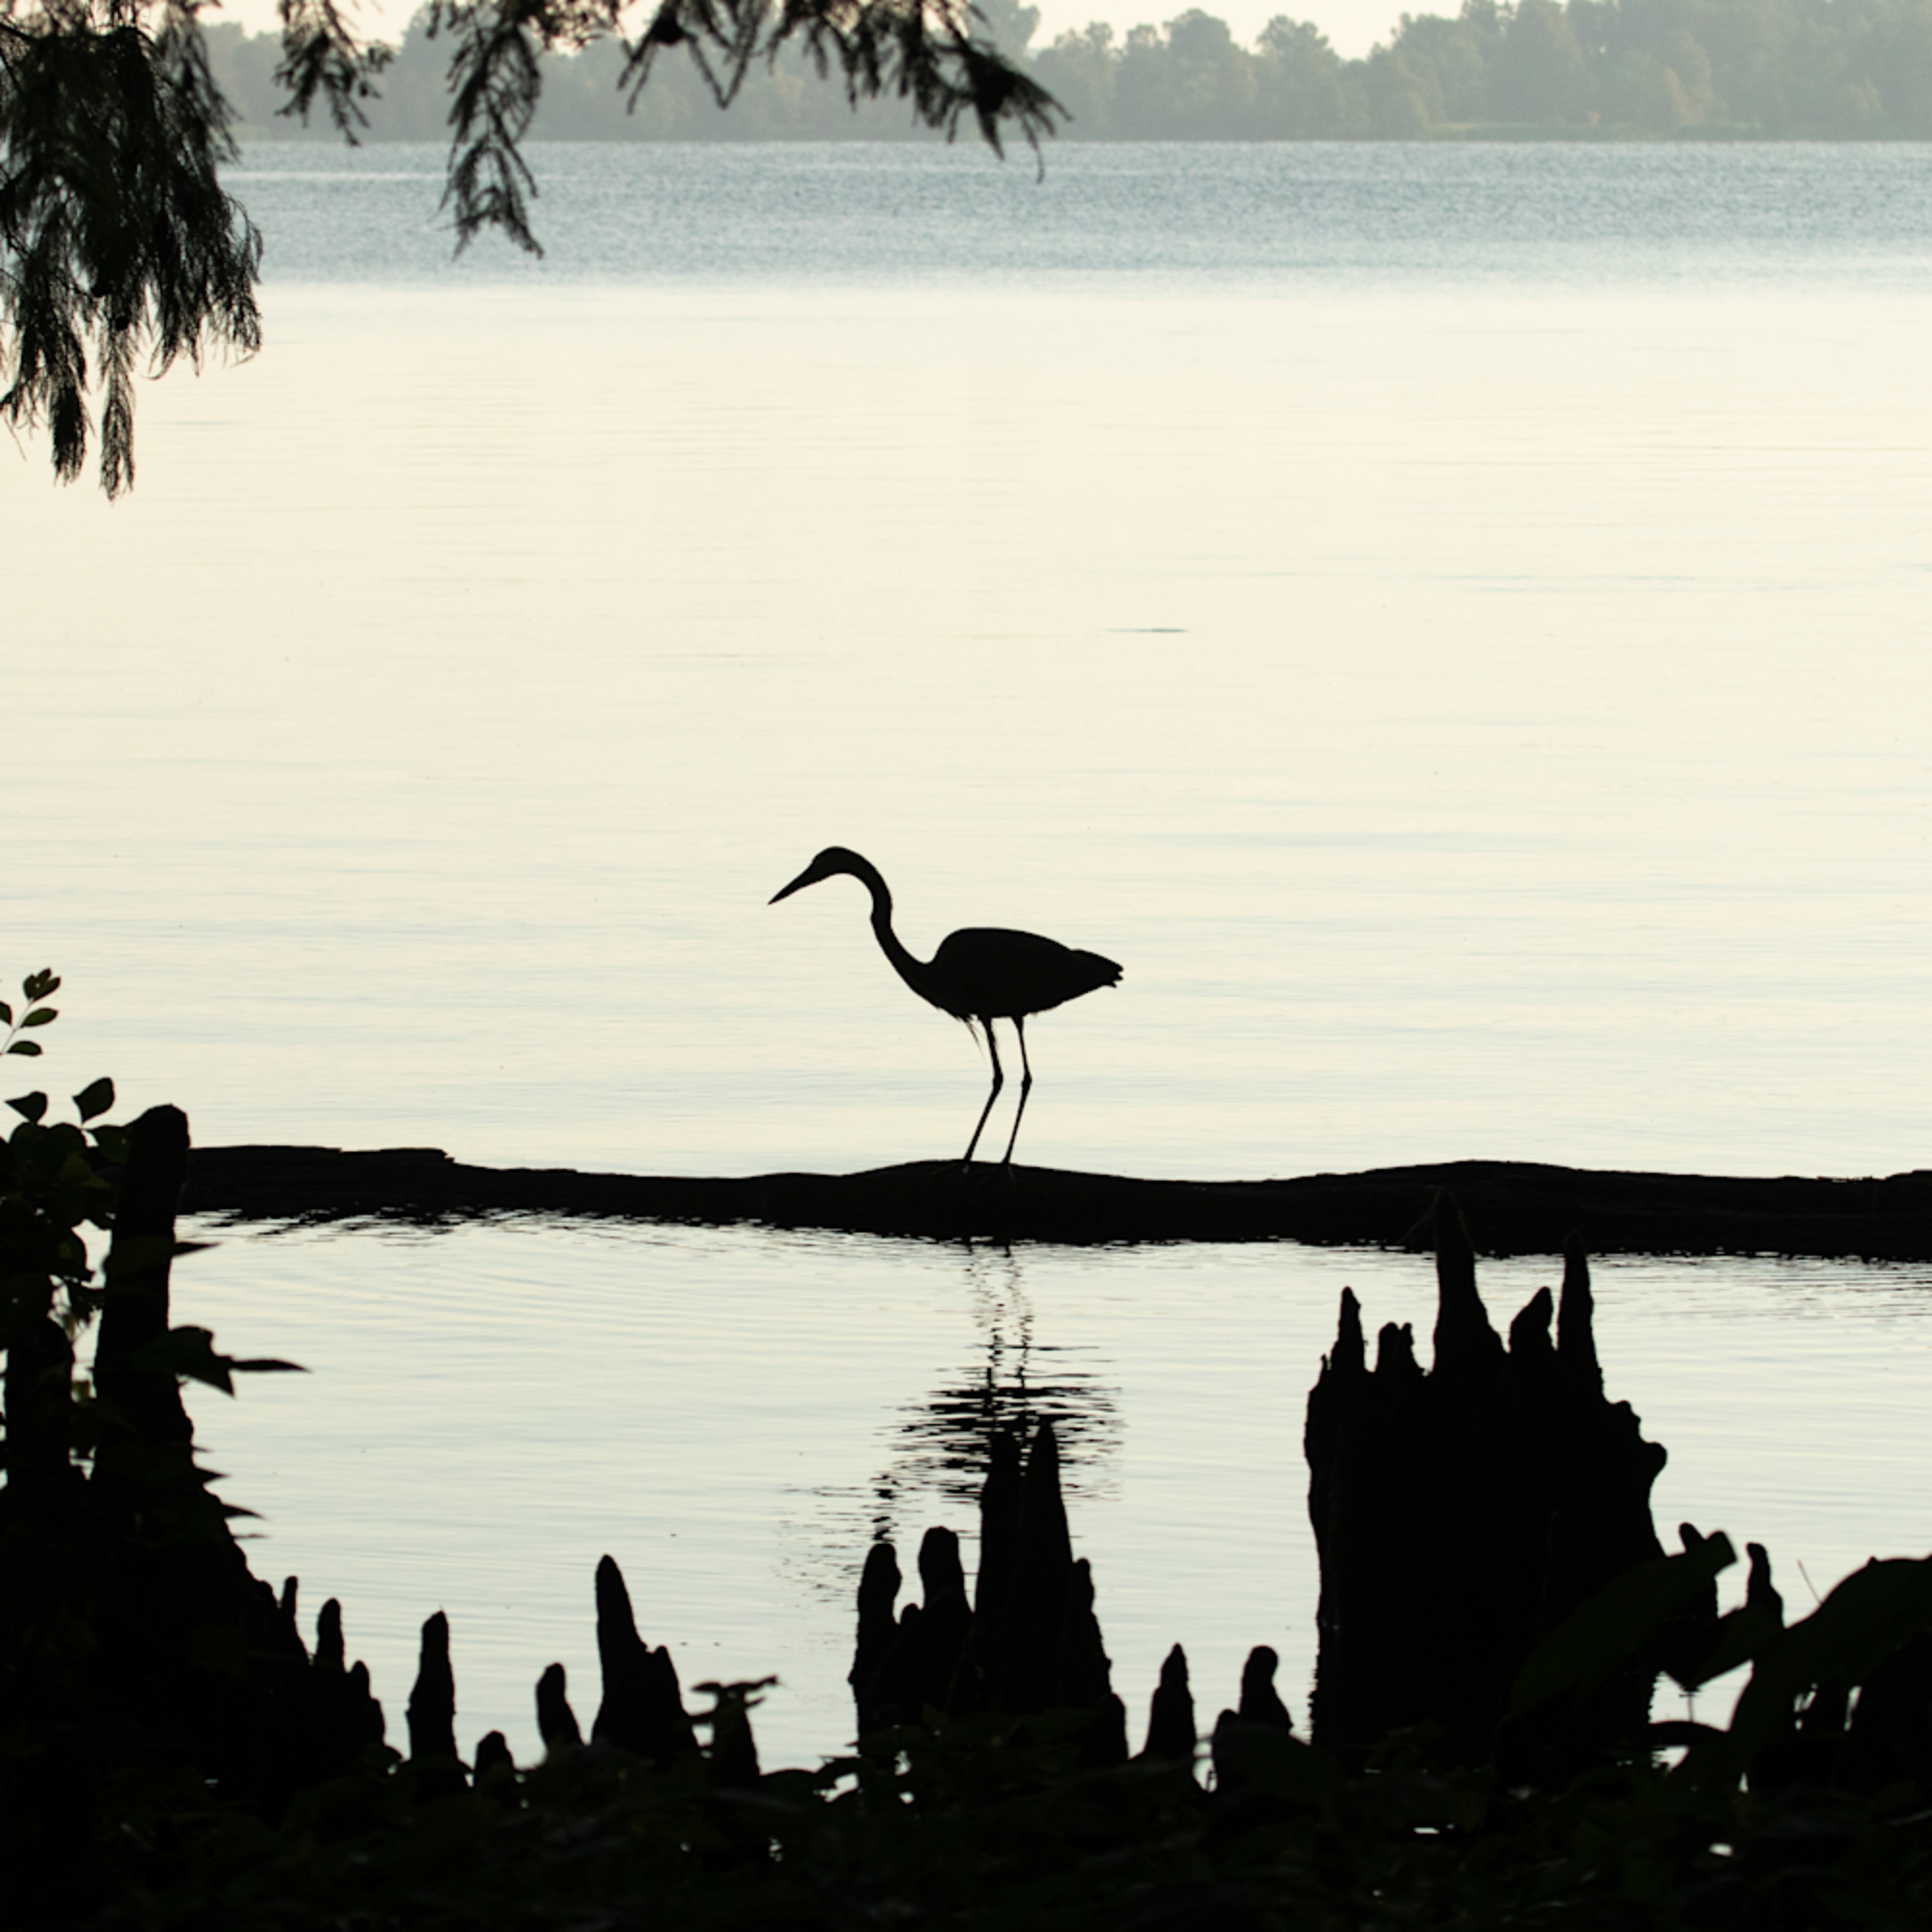 Heron silhouettes mg 7517 srm20 eudr3a